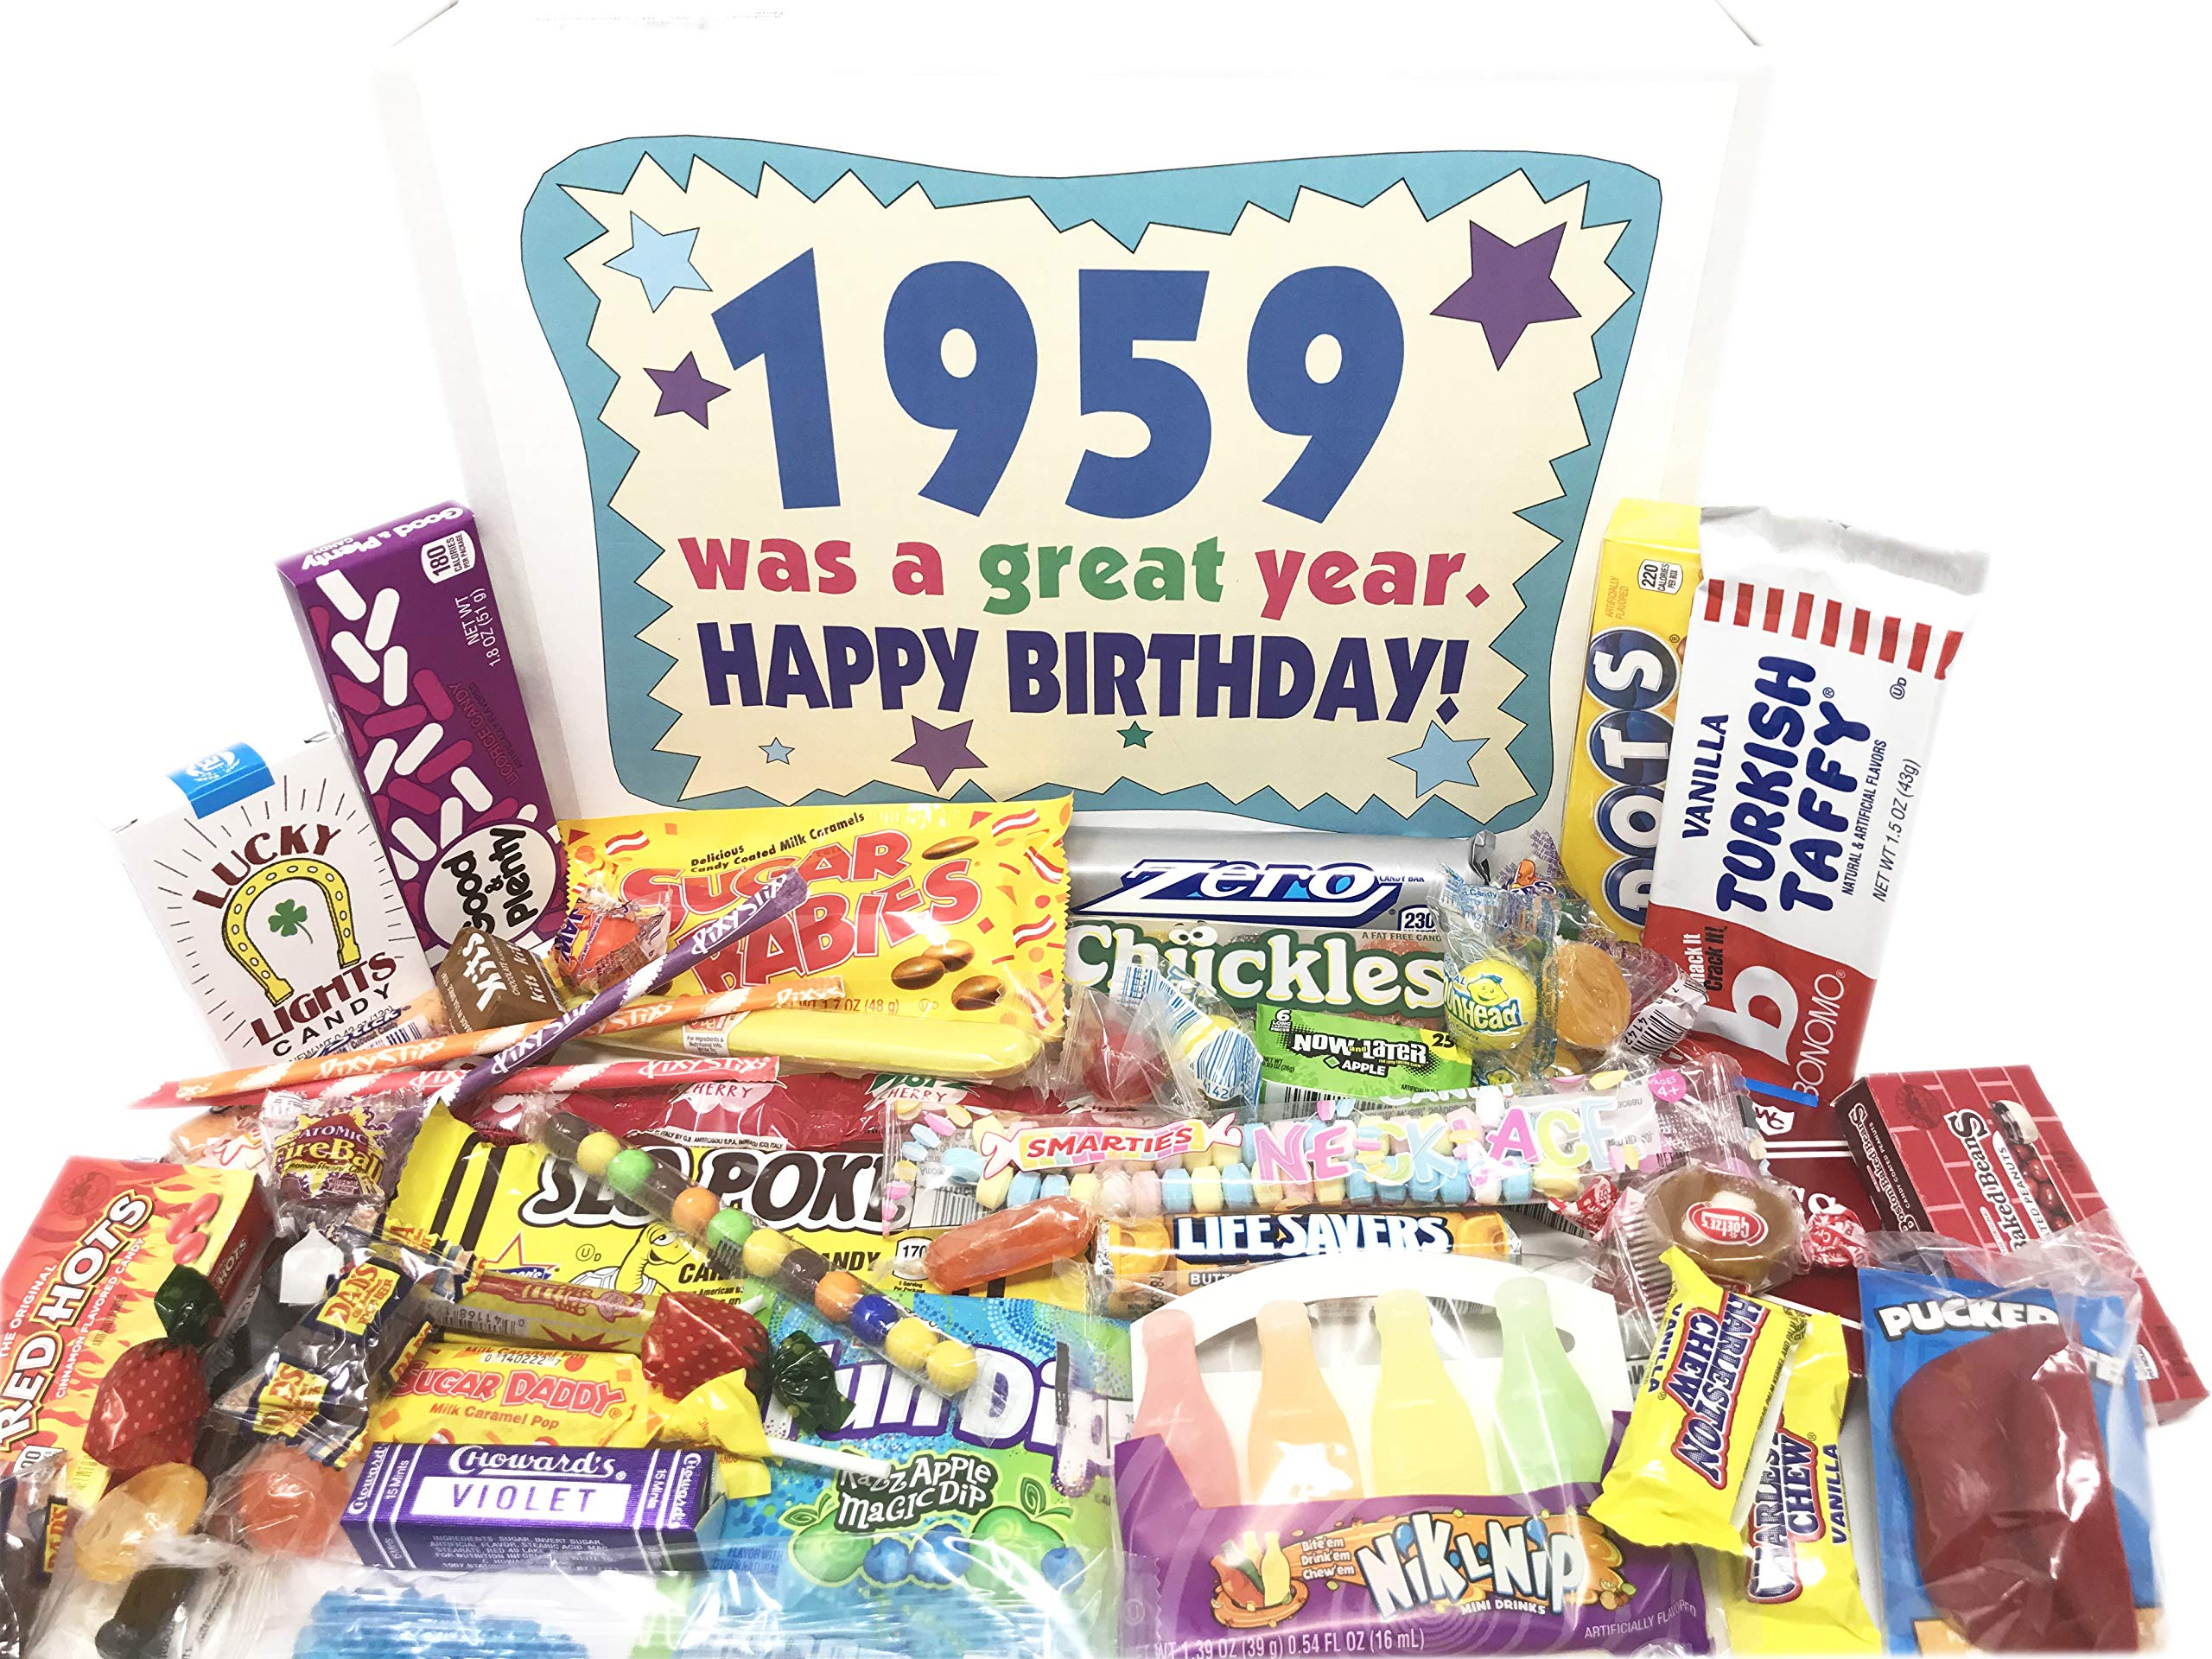 Woodstock Candy ~ 60th Birthday Gift Ideas - Retro Vintage Candy Assortment from Childhood - 60 Years Old Birthday Gifts for Men and Women Born 1959